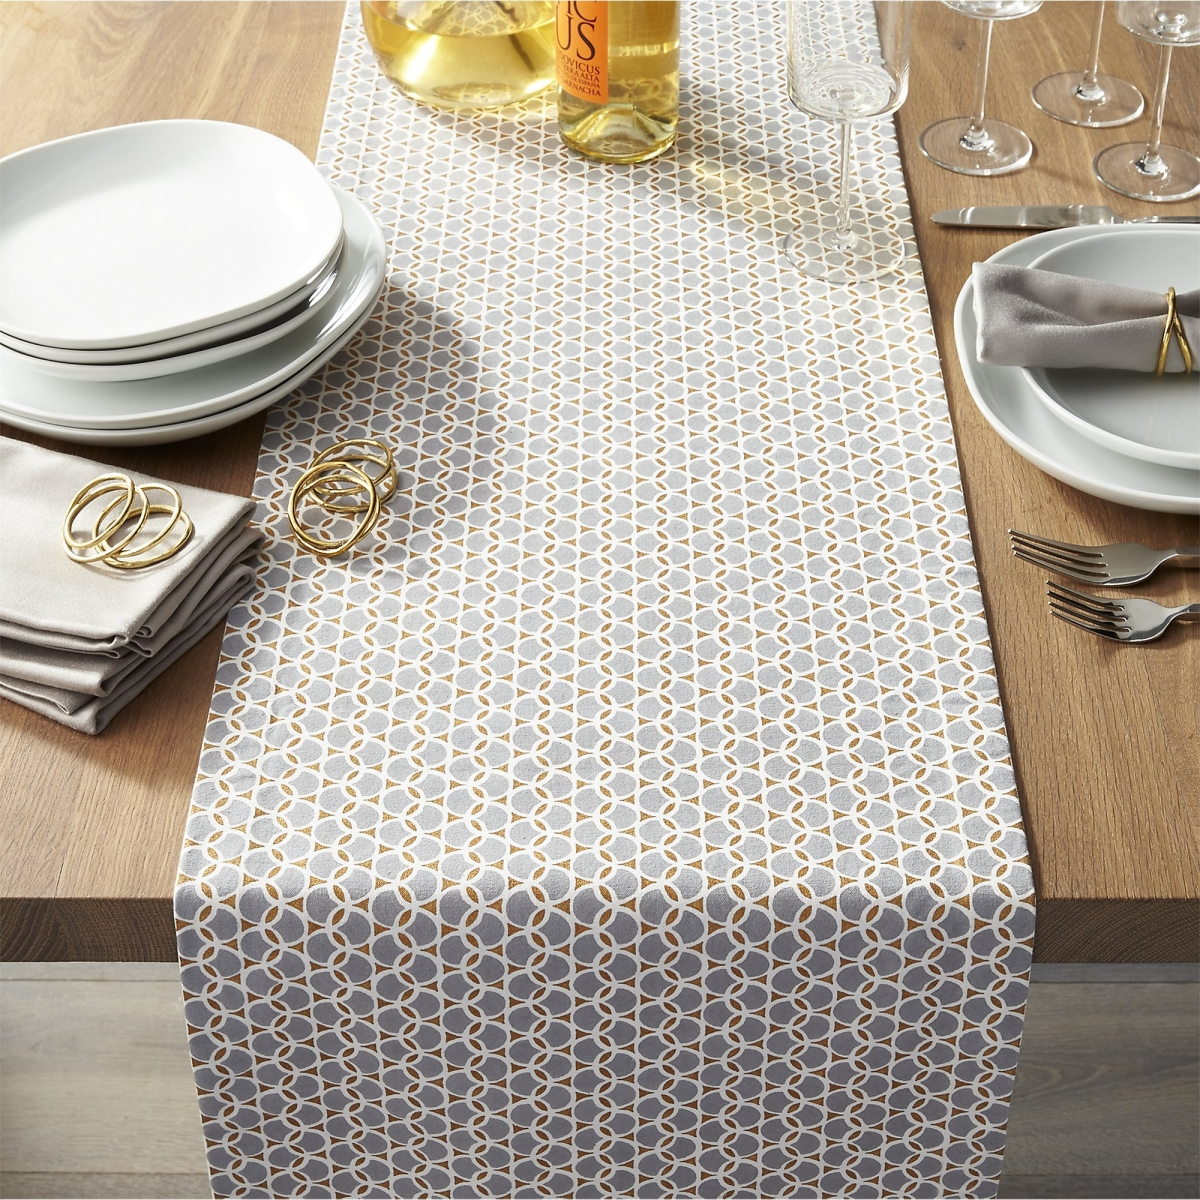 Attrayant View In Gallery Geometric Table Runner From Crate U0026 Barrel